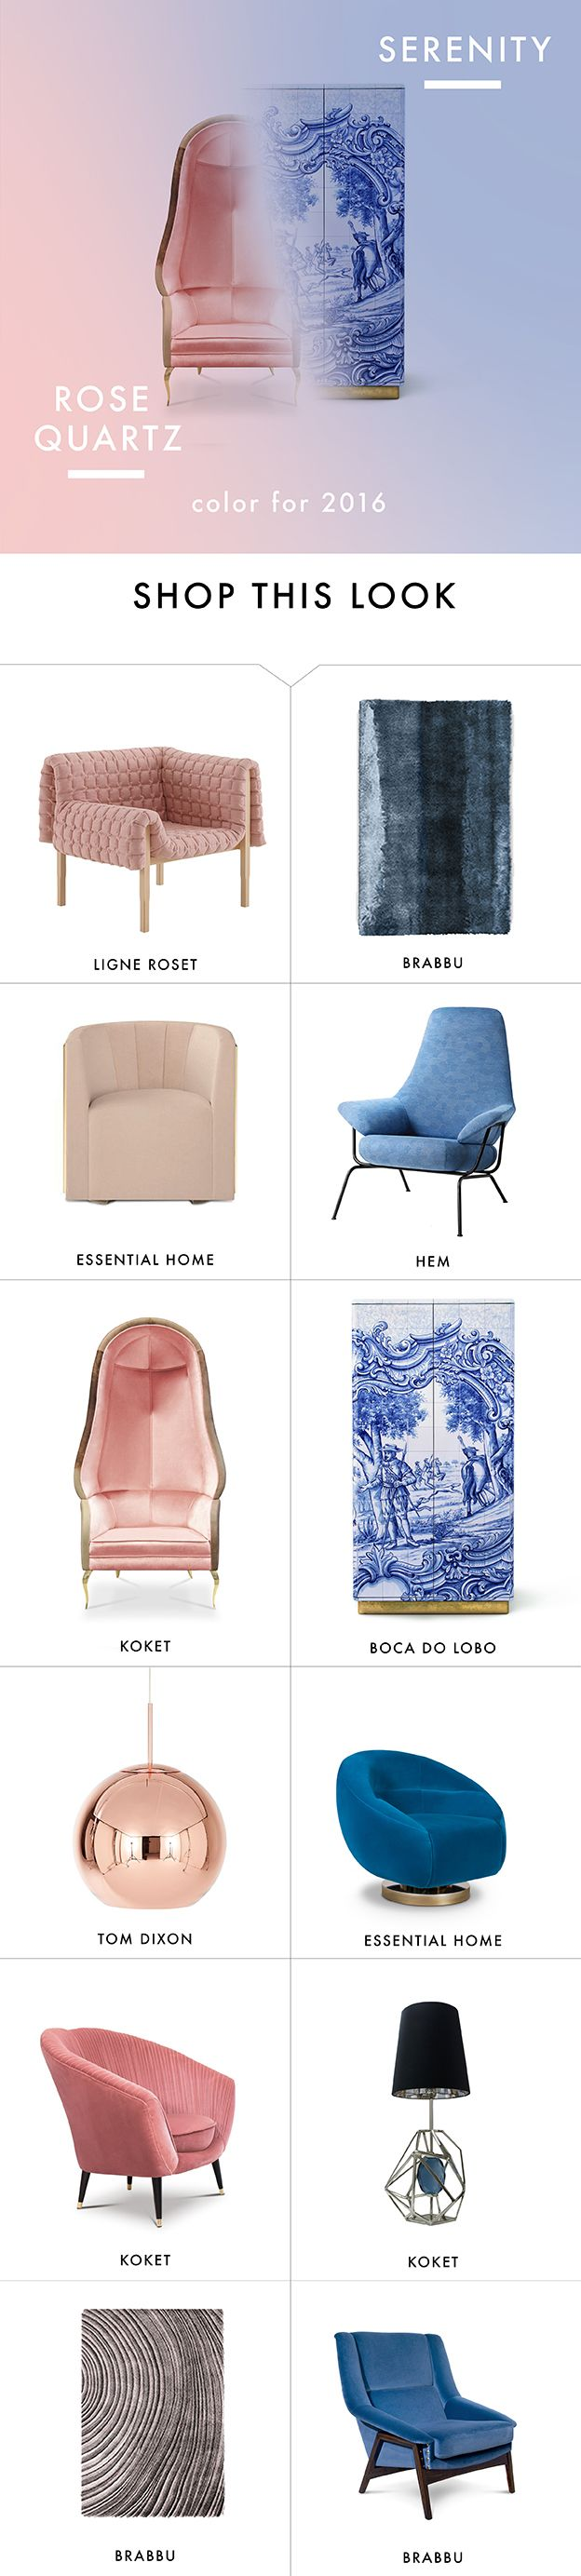 Pantone Color 2016 Rose Quartz and Serenity Blue http://inspirationdesignbooks.com/infographic/